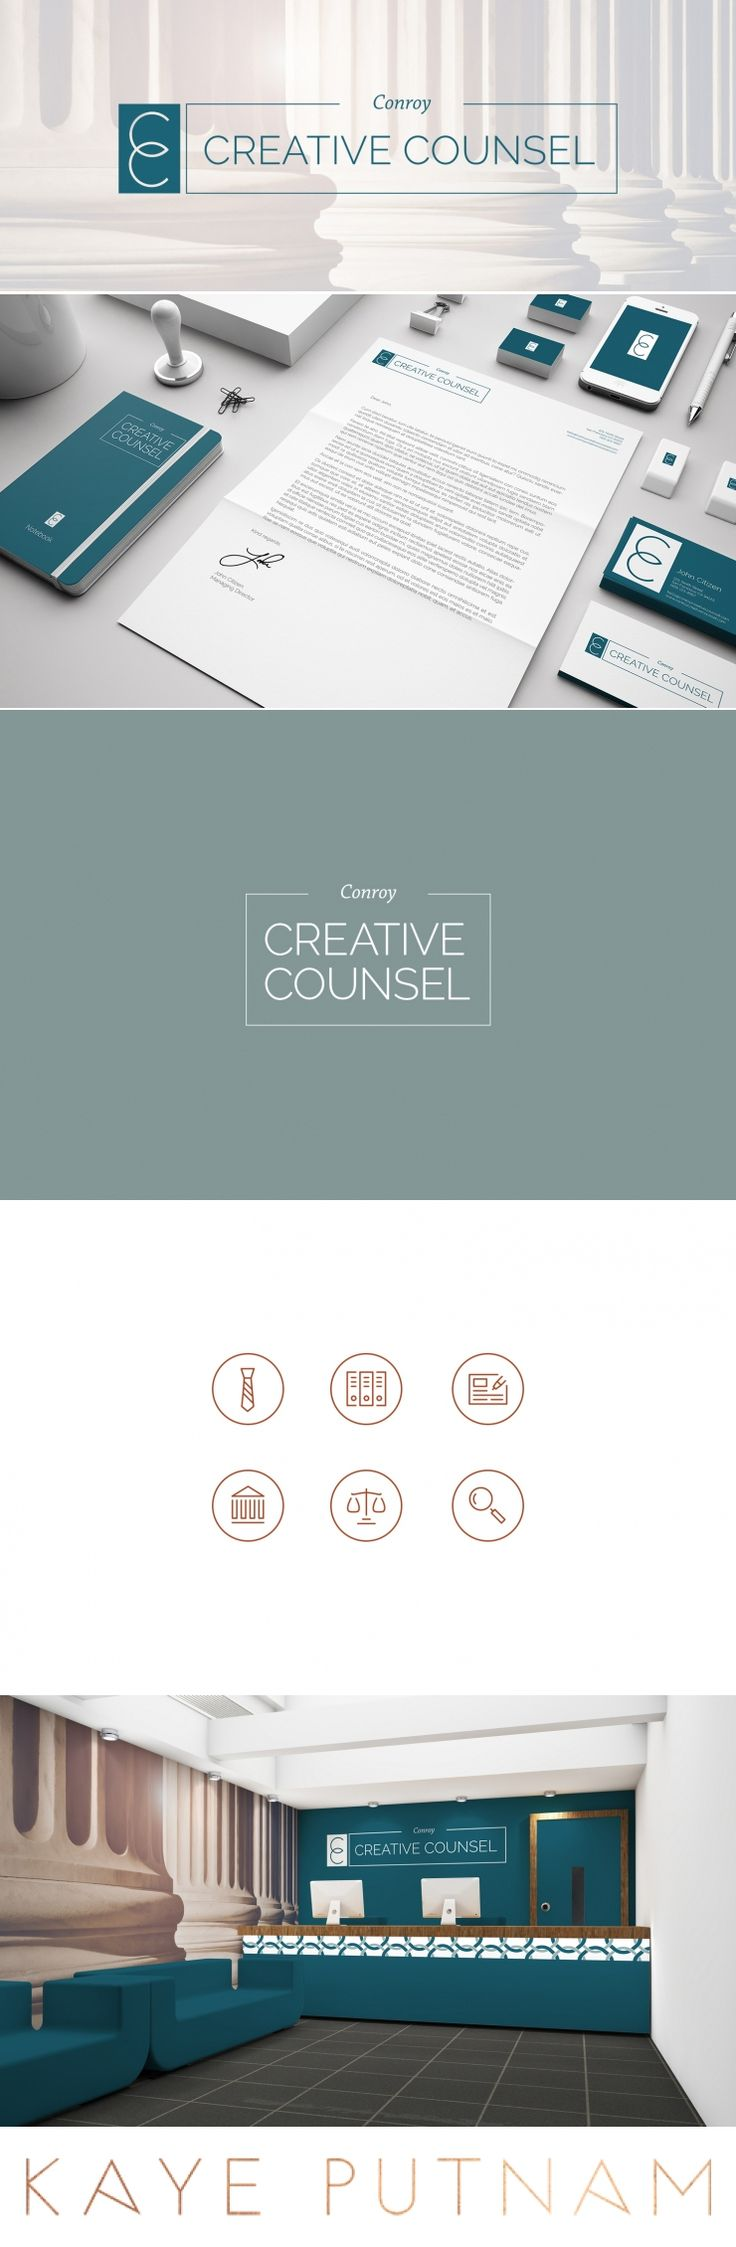 Conroy Creative Counsel is a web design and online marketing firm for the law industry. We combined her Sage & Royal Brand archetypes to create this compelling brand strategy and identity.